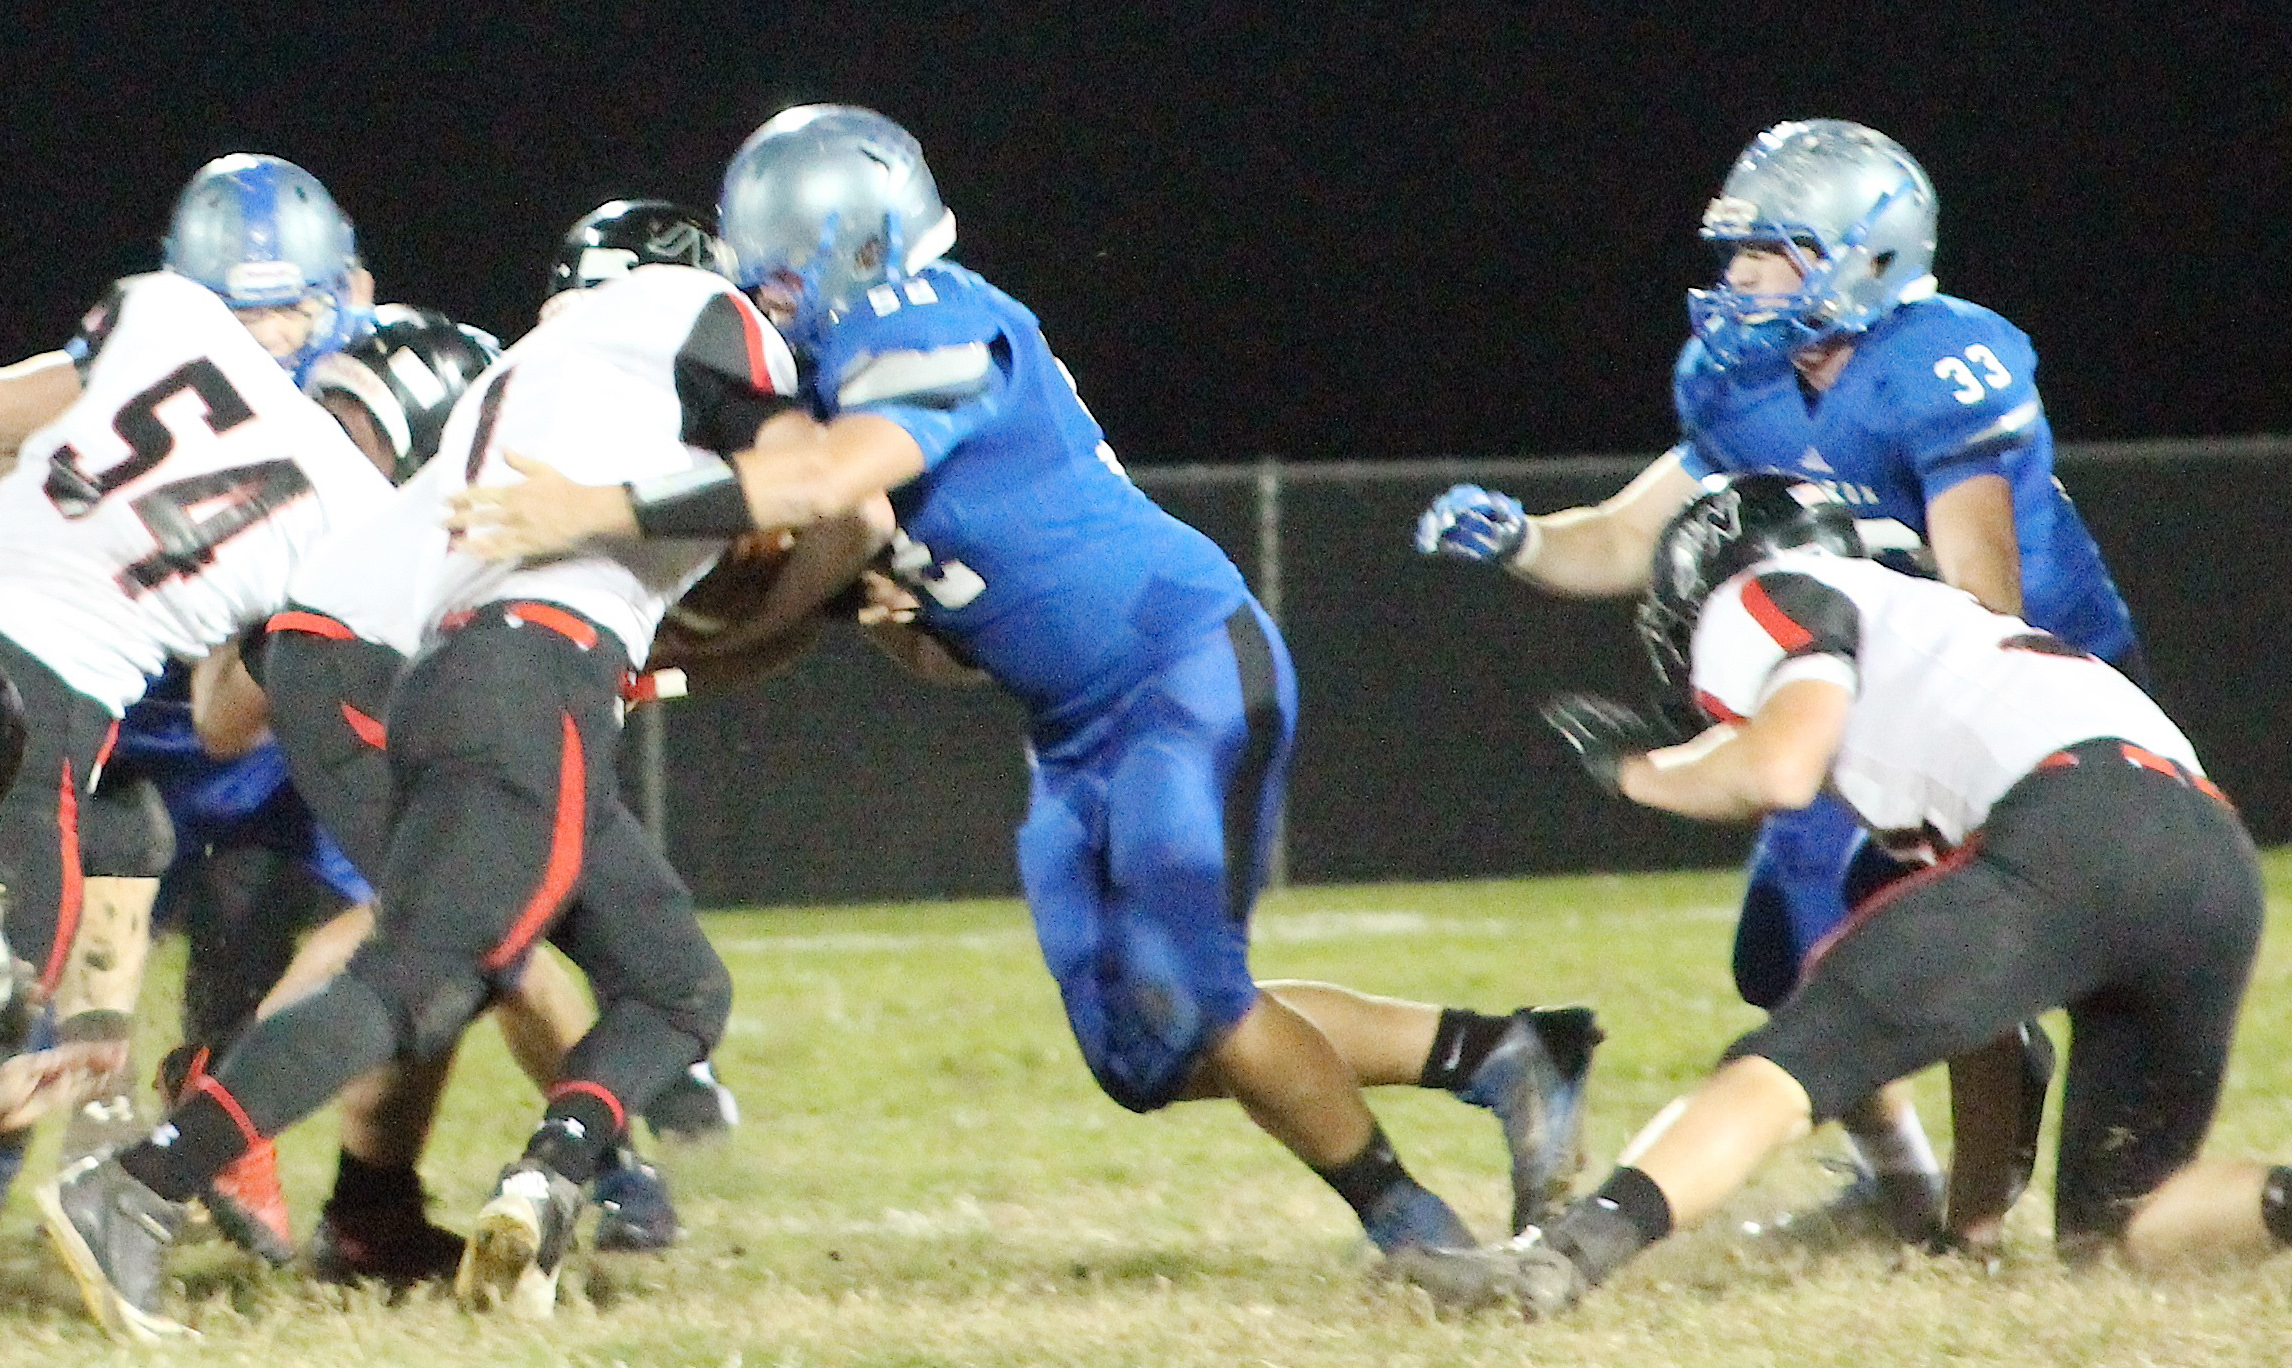 Holton lineman Jacob Coufal (middle) holds his ground at the line of scrimmage.